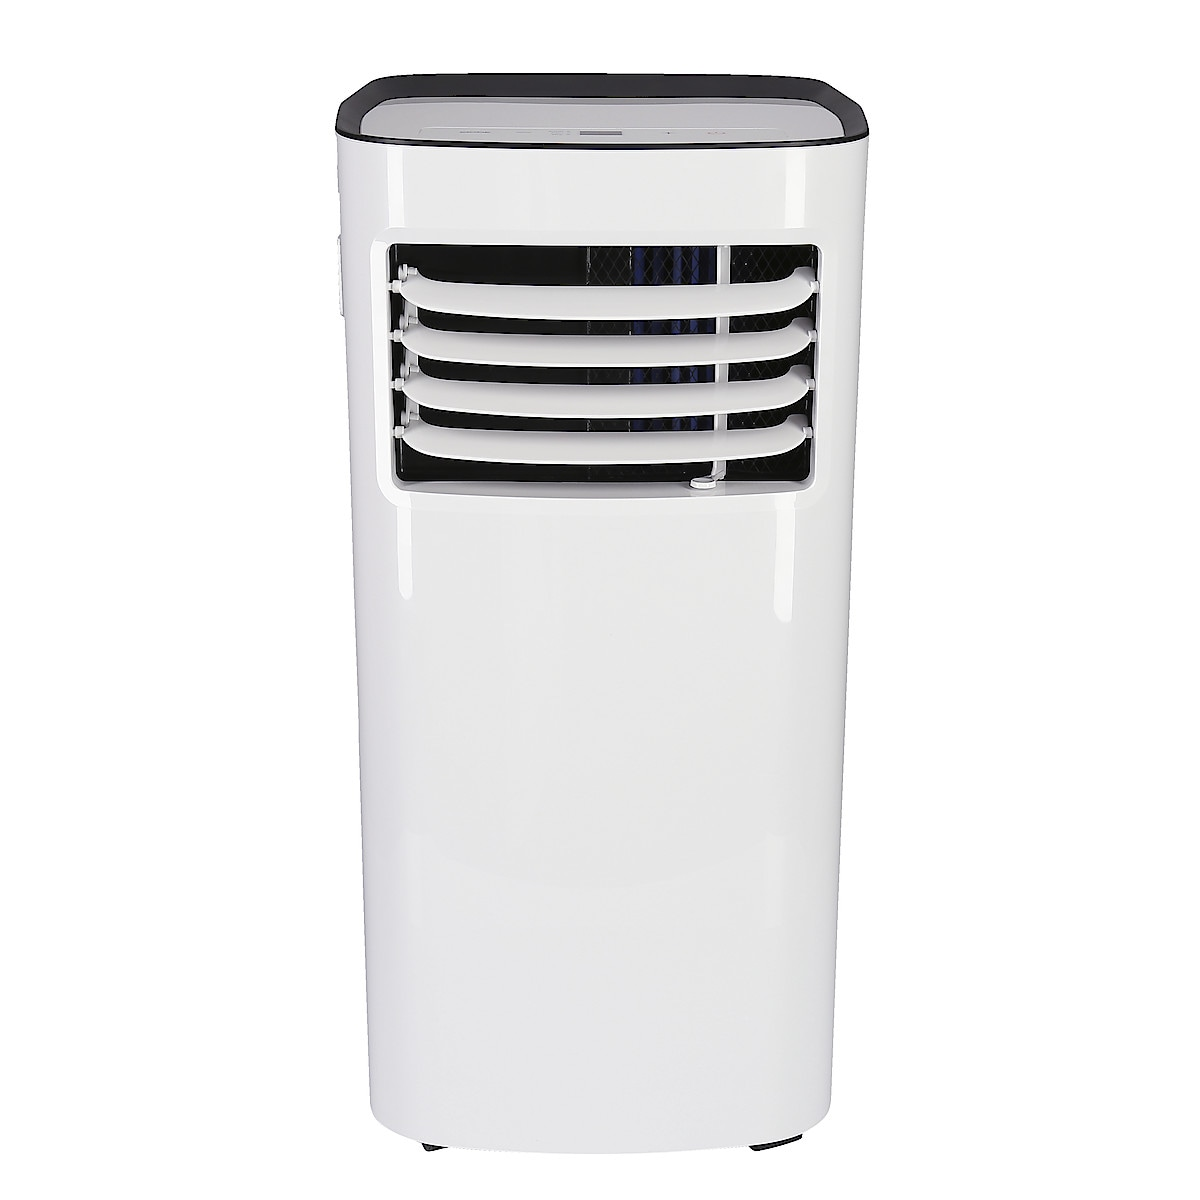 Cotech Air Conditioner